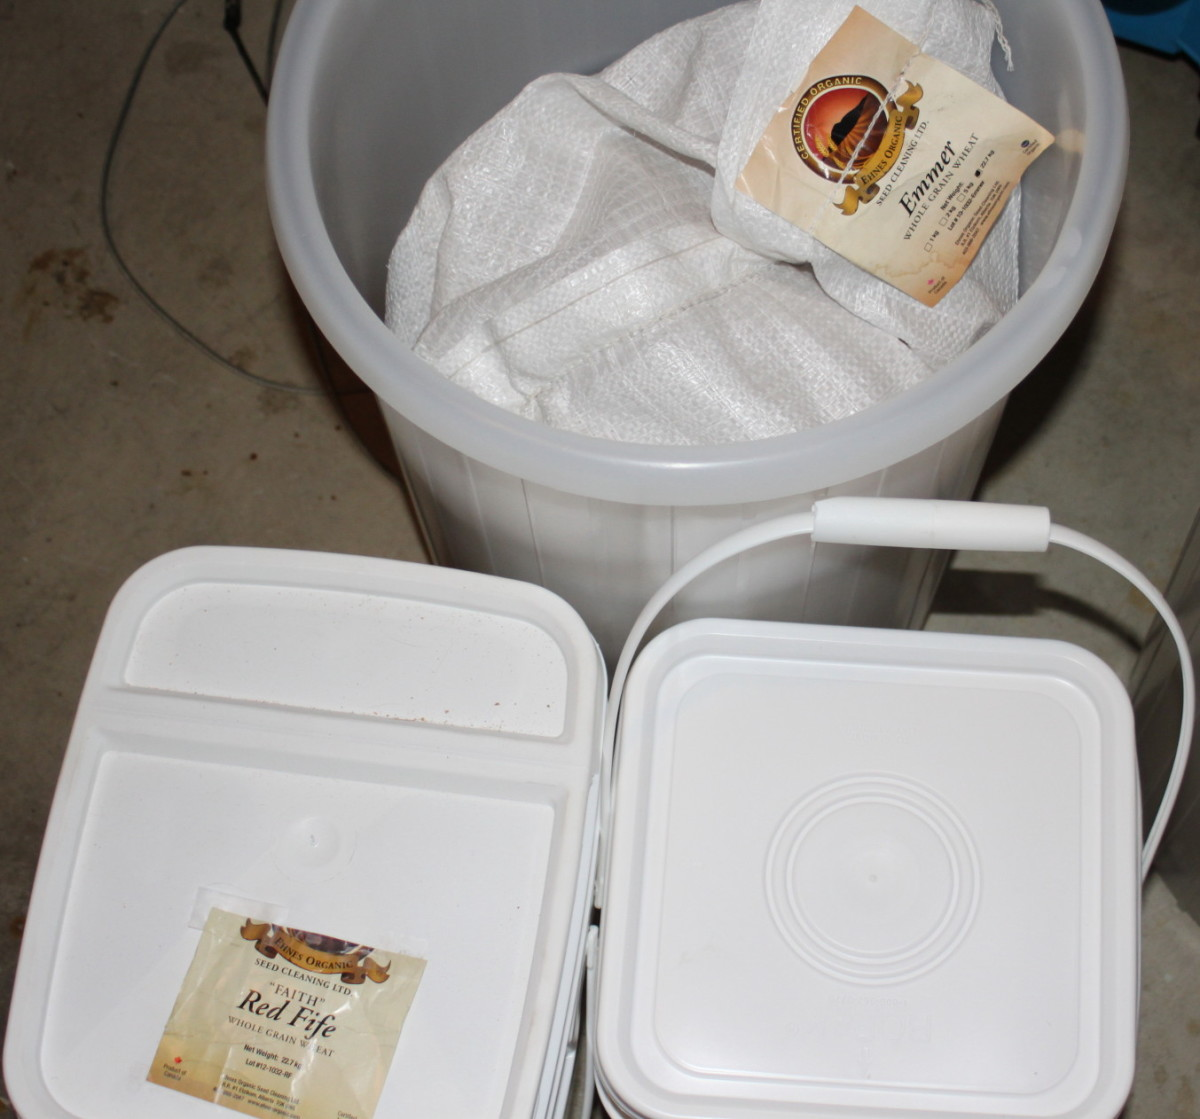 Food-grade containers I use for storing grains.